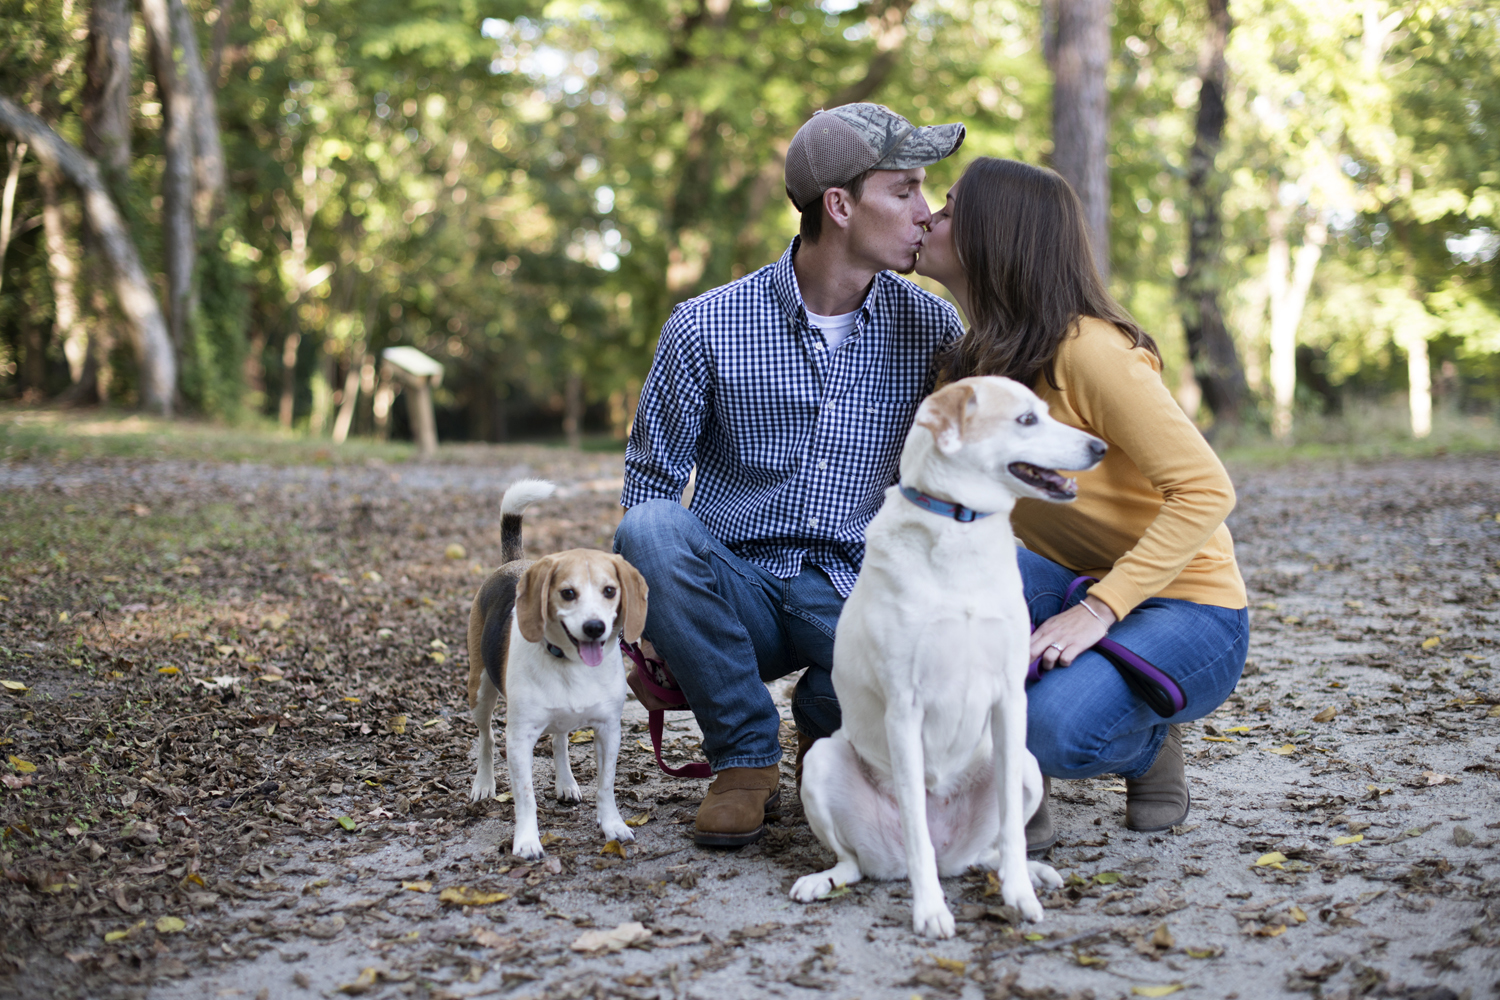 Newlyweds with their dogs for family pictures in a park in the fall